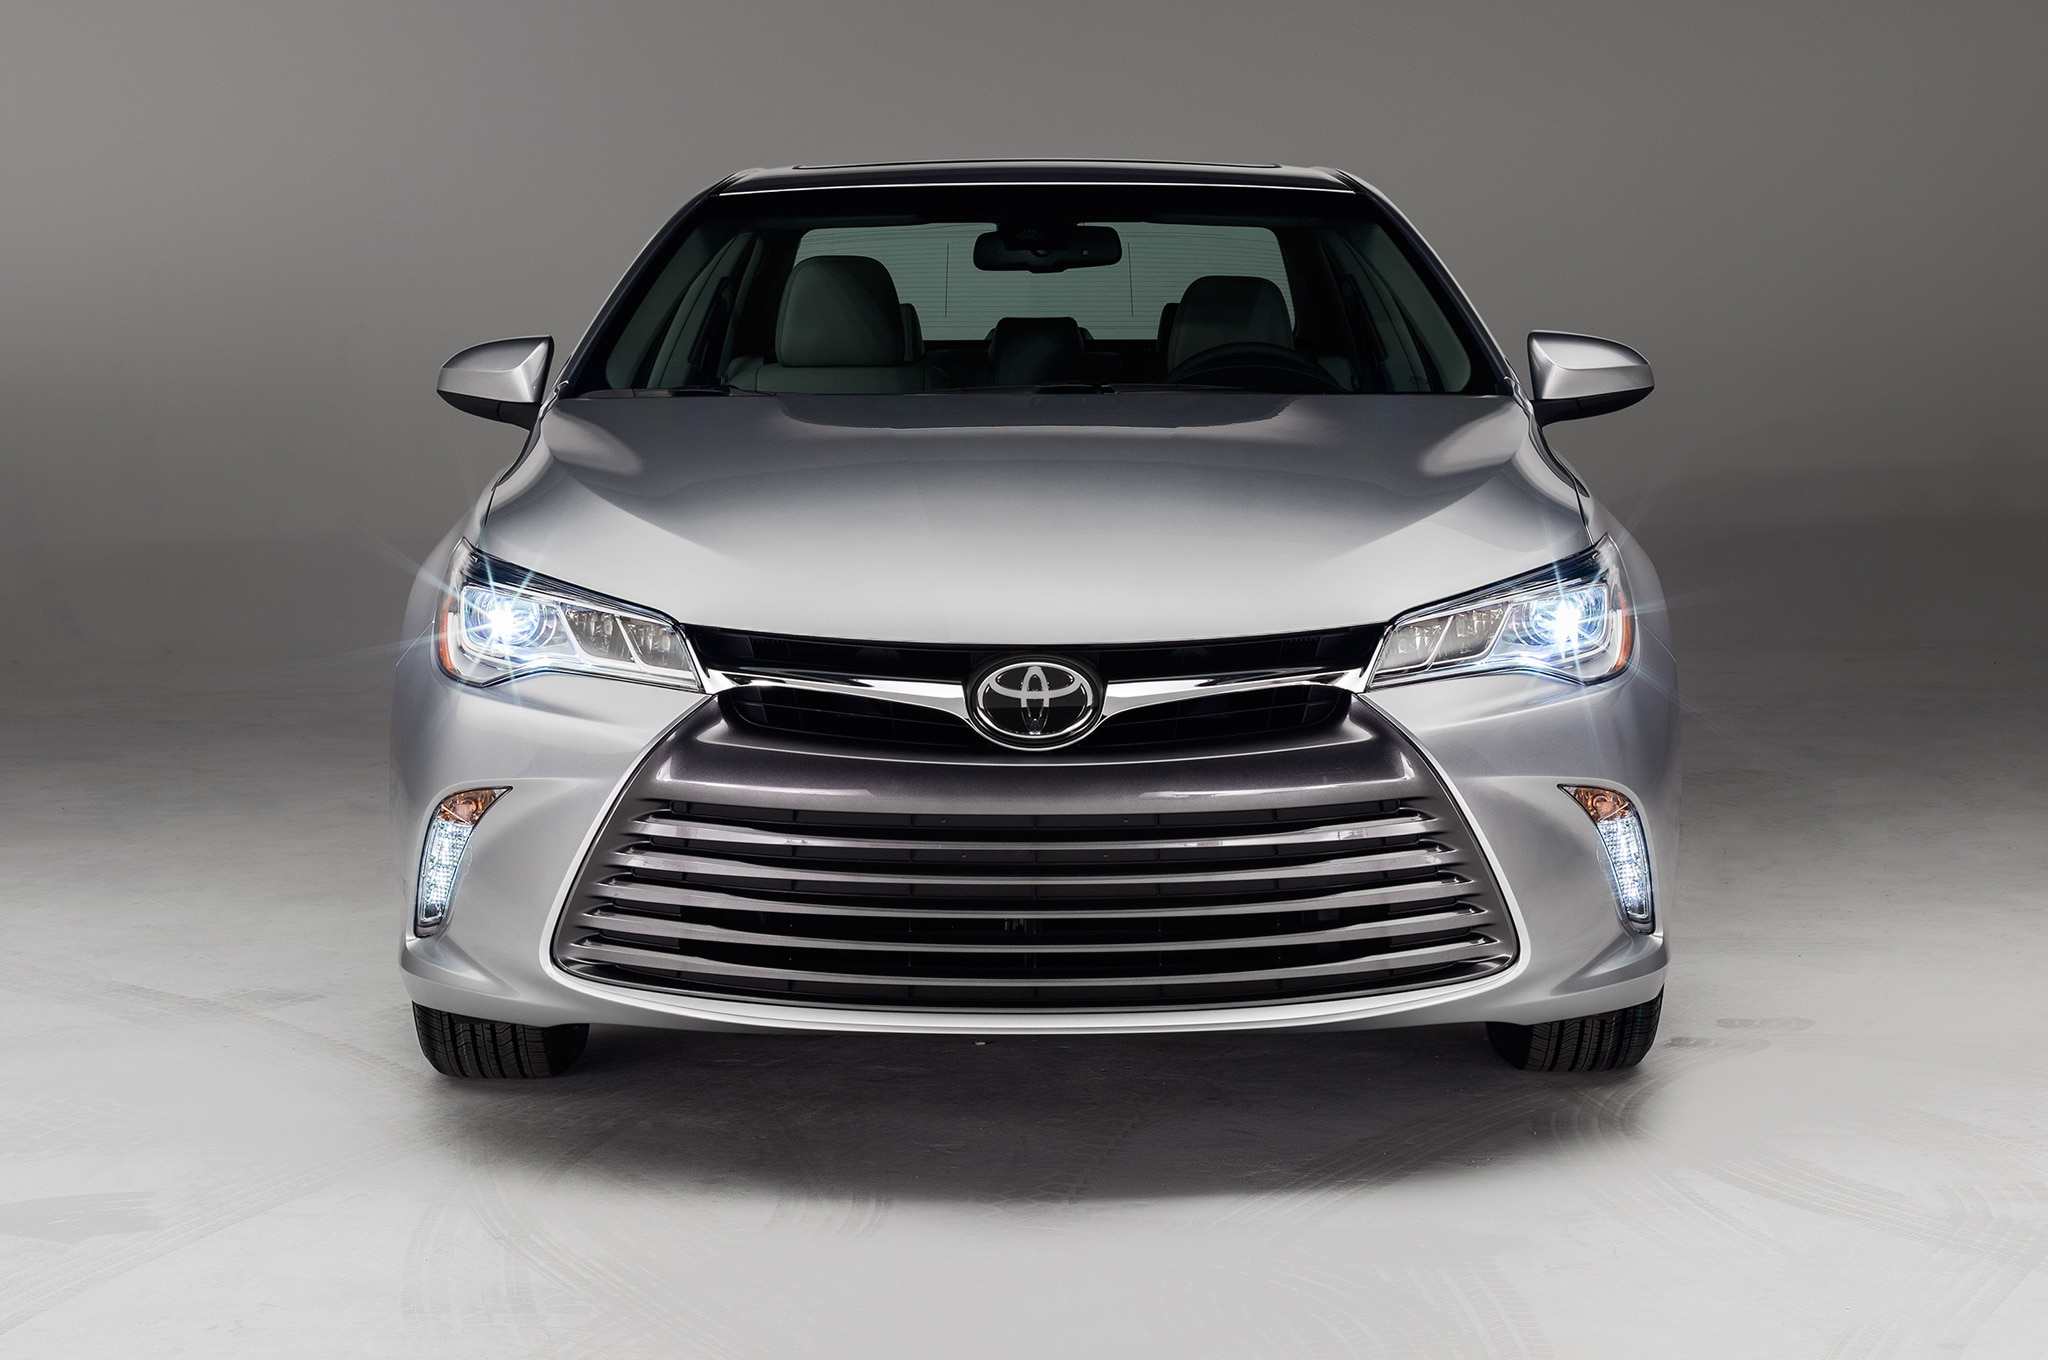 2015 Toyota Camry XLE front view lights on sing ligth wiring diagram camry 2015 conventional fire alarm 2015 Toyota Camry Spare Tire Location at aneh.co